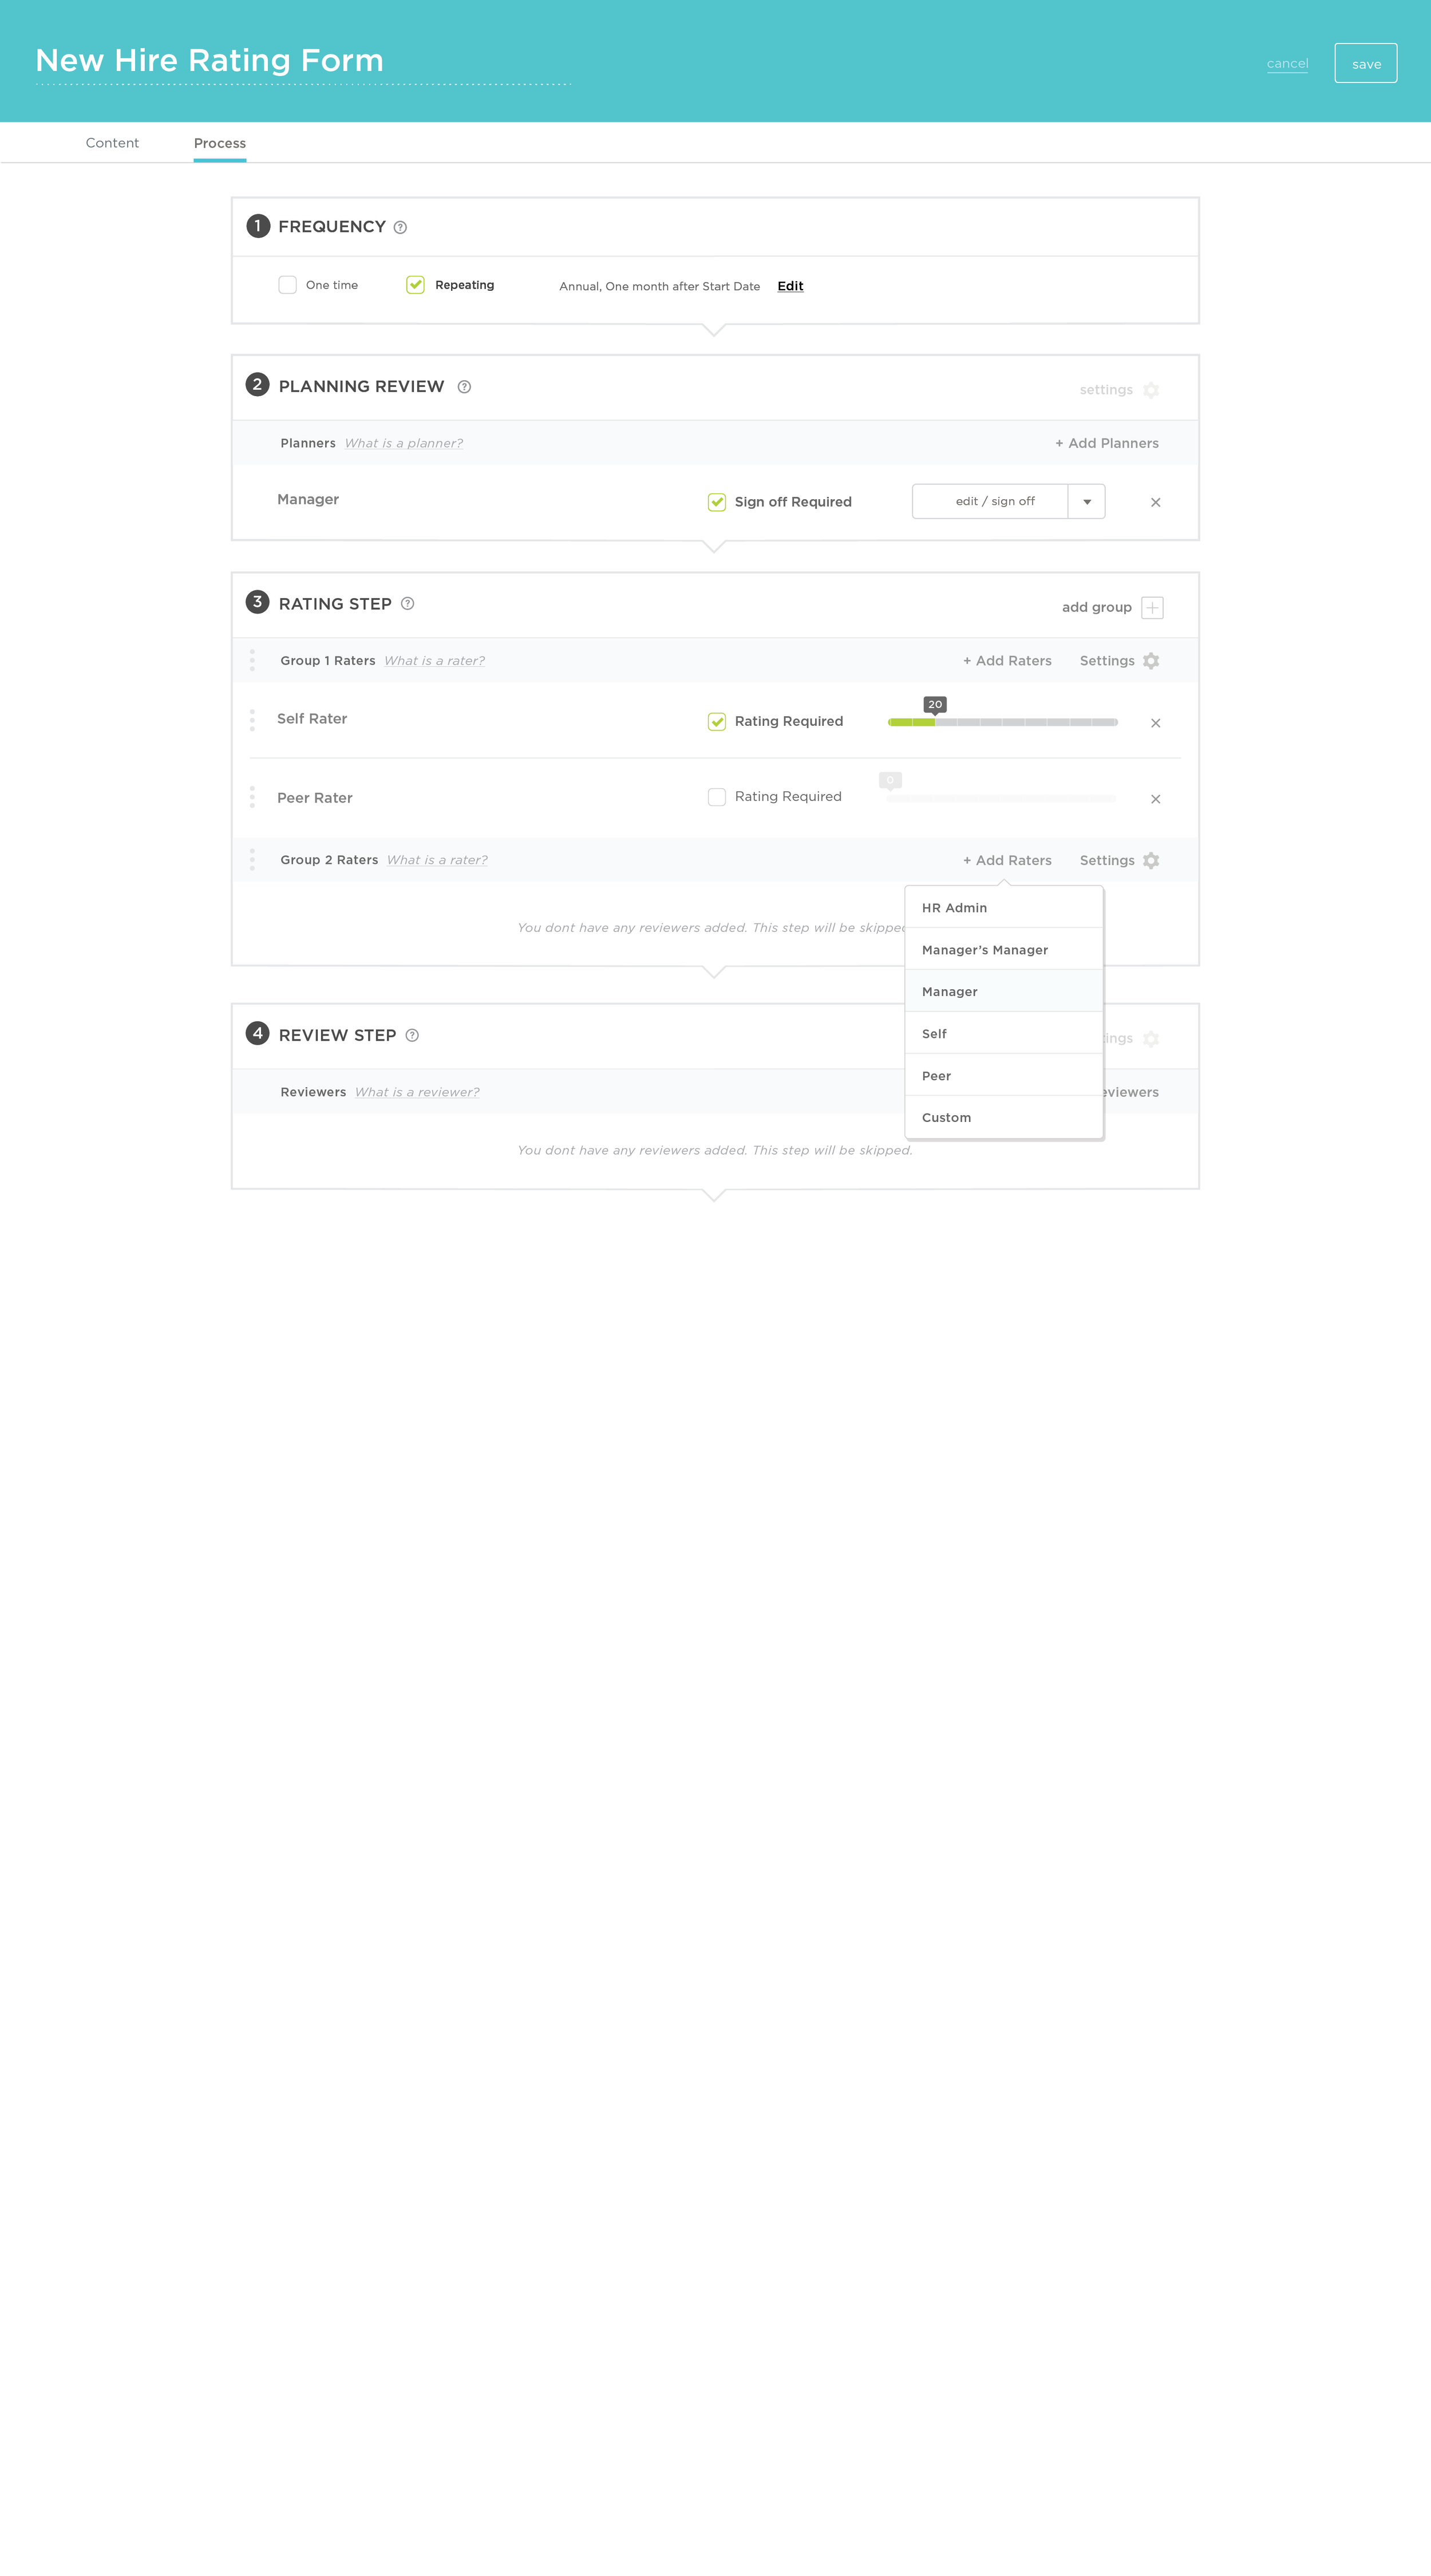 Invision_Pe_rating-form-process_03_16.png